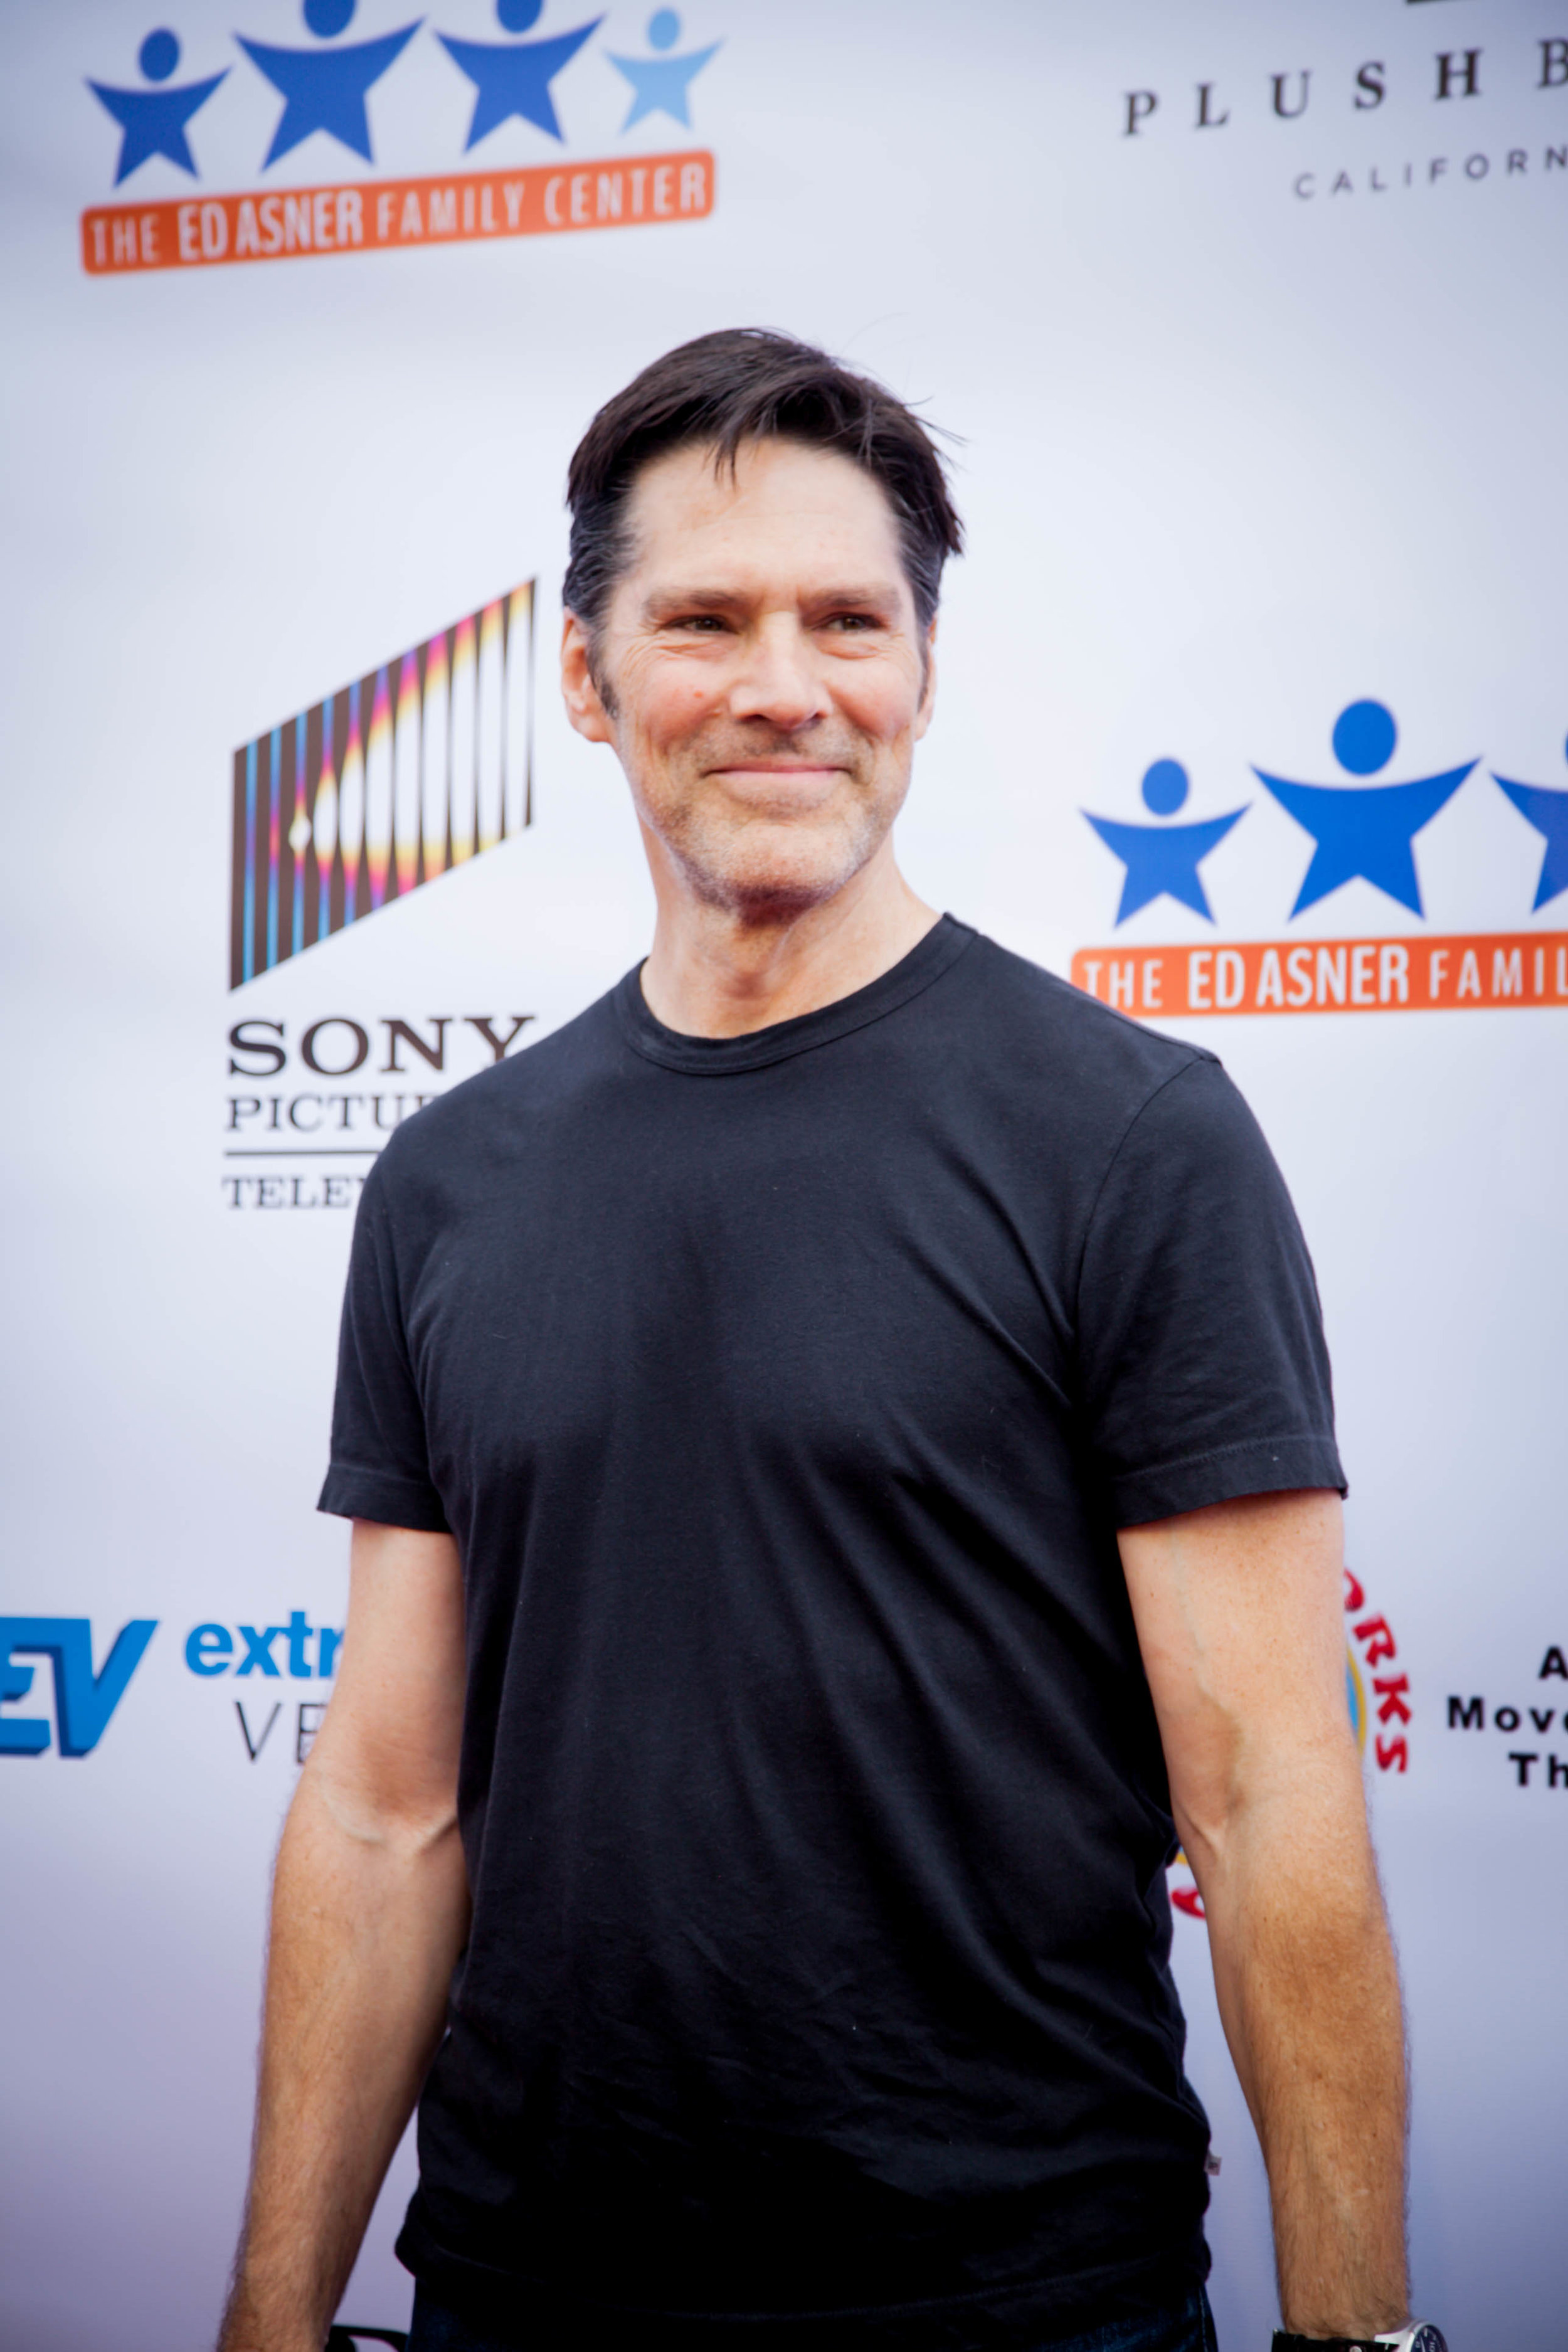 Thomas Gibson. Photo by Erin Poole for Average Socialite.